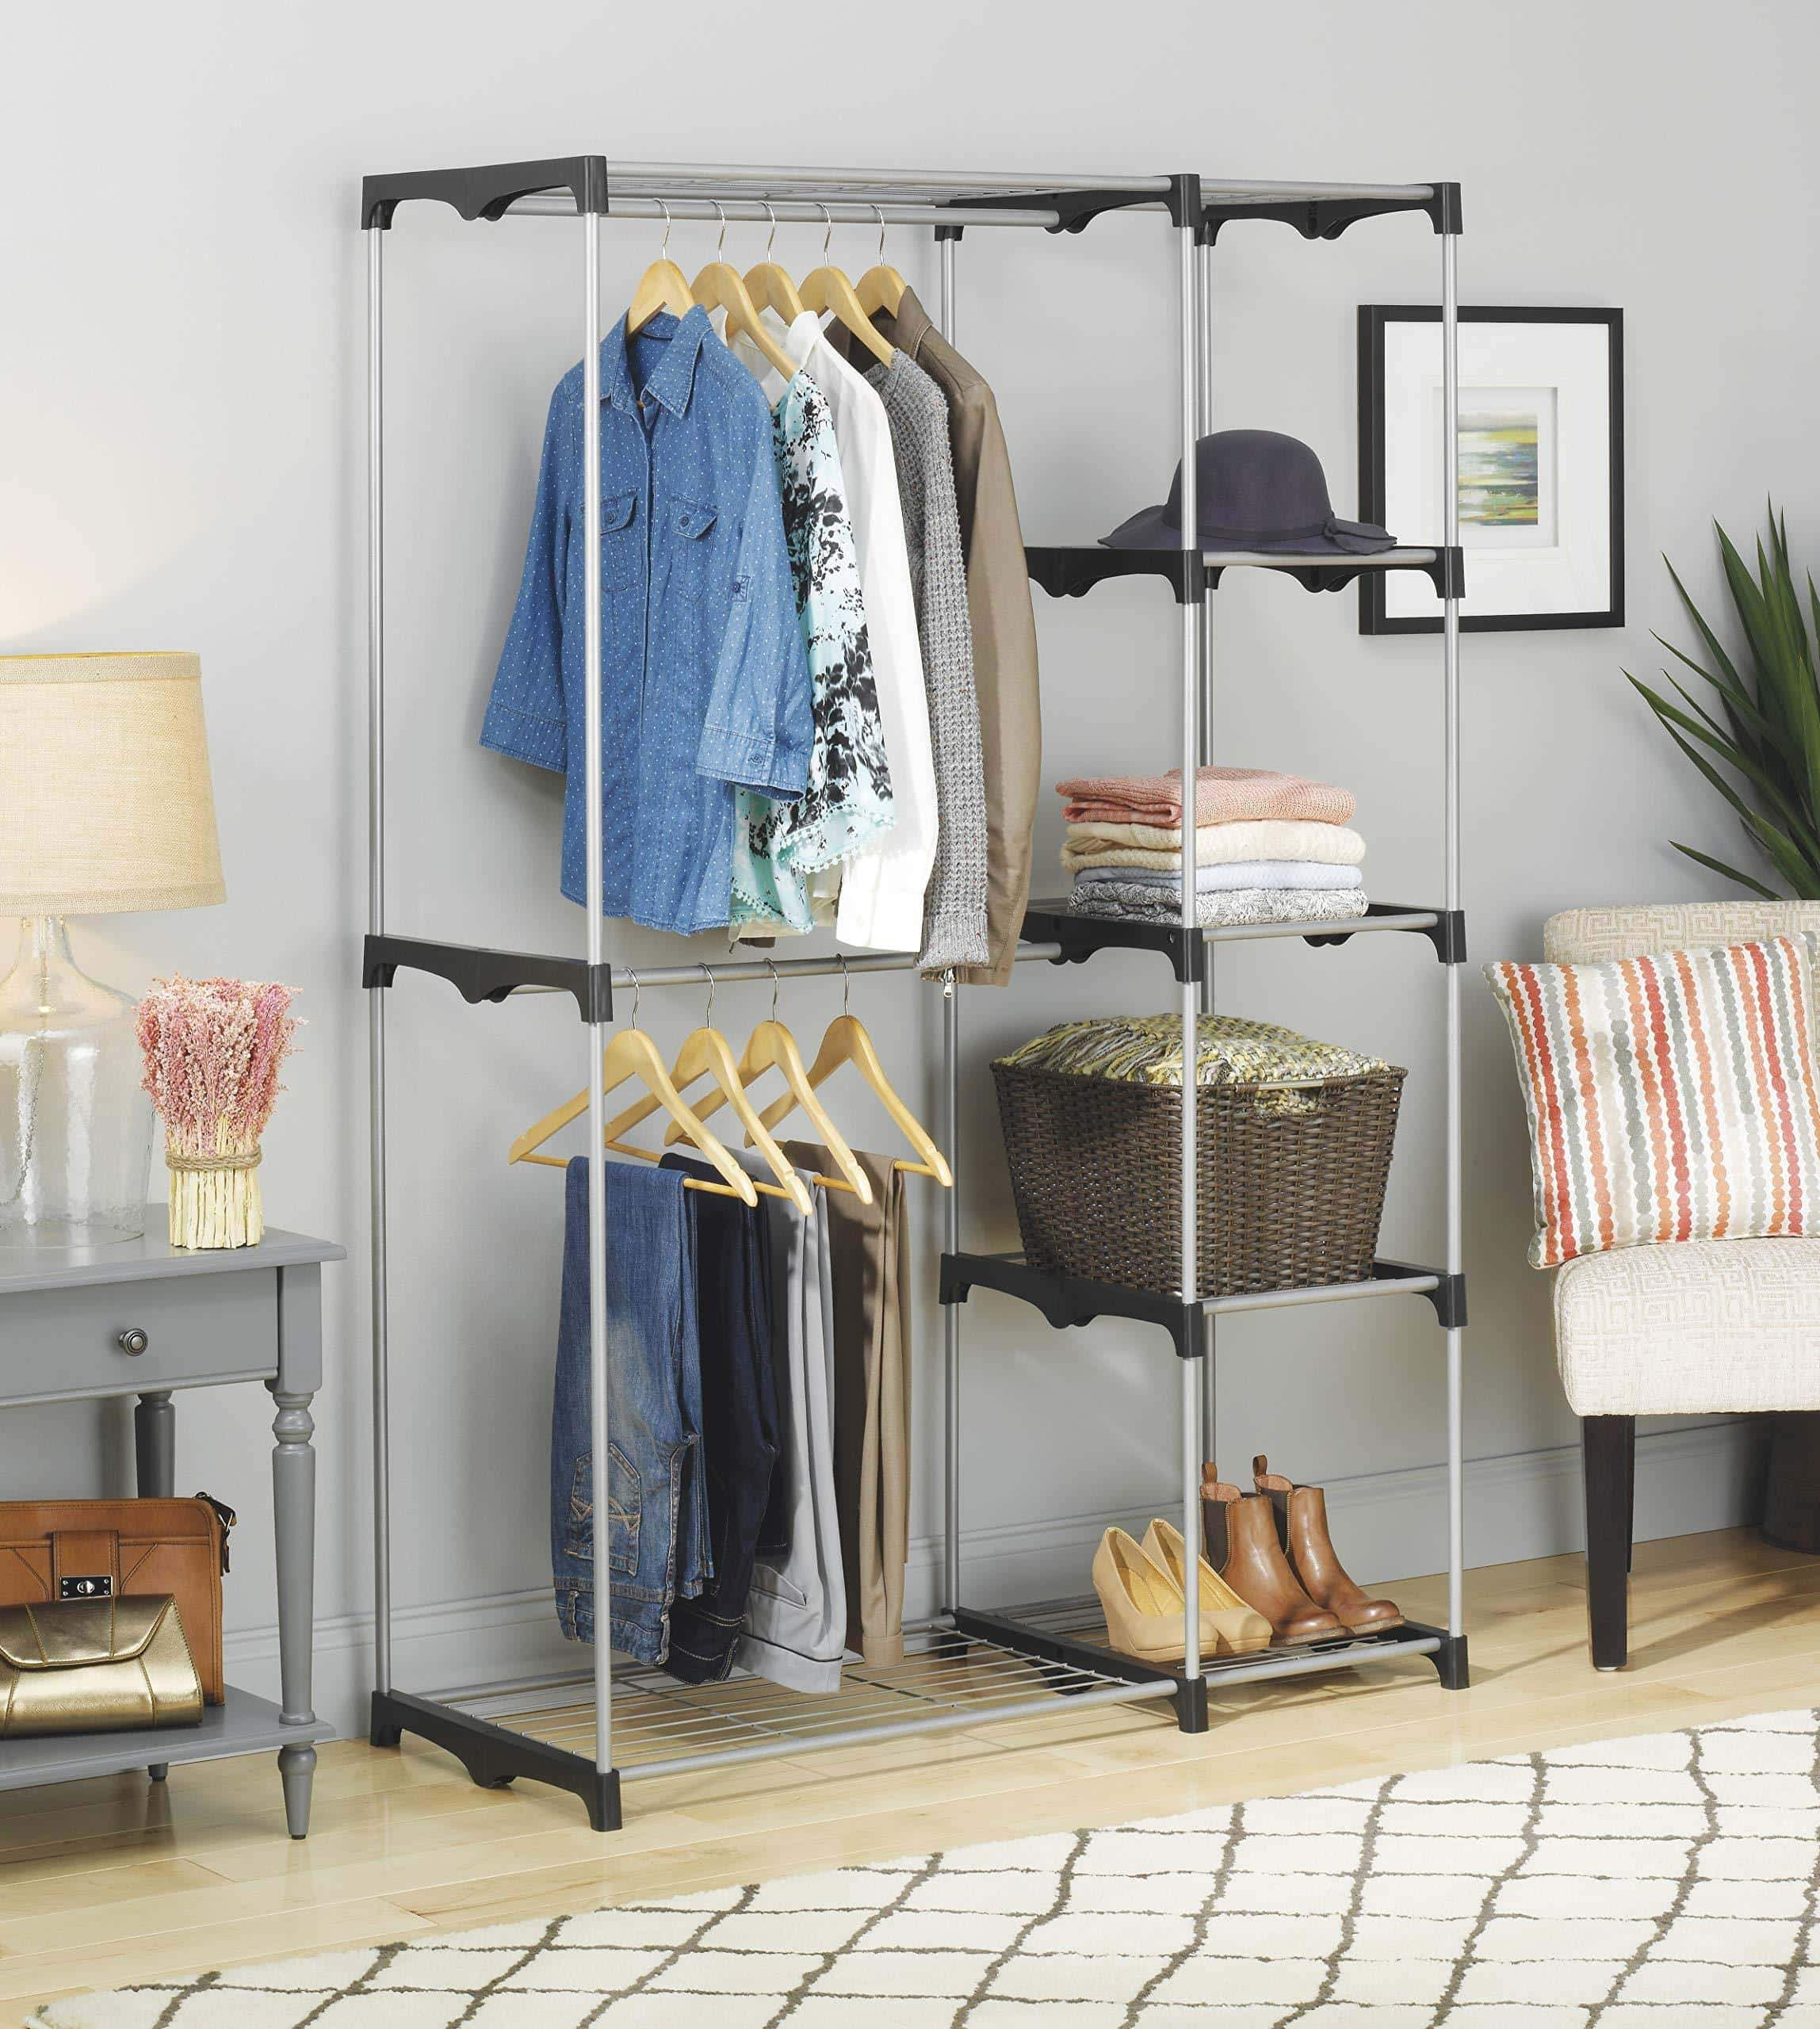 Discover the whitmor double rod freestanding closet heavy duty storage organizer